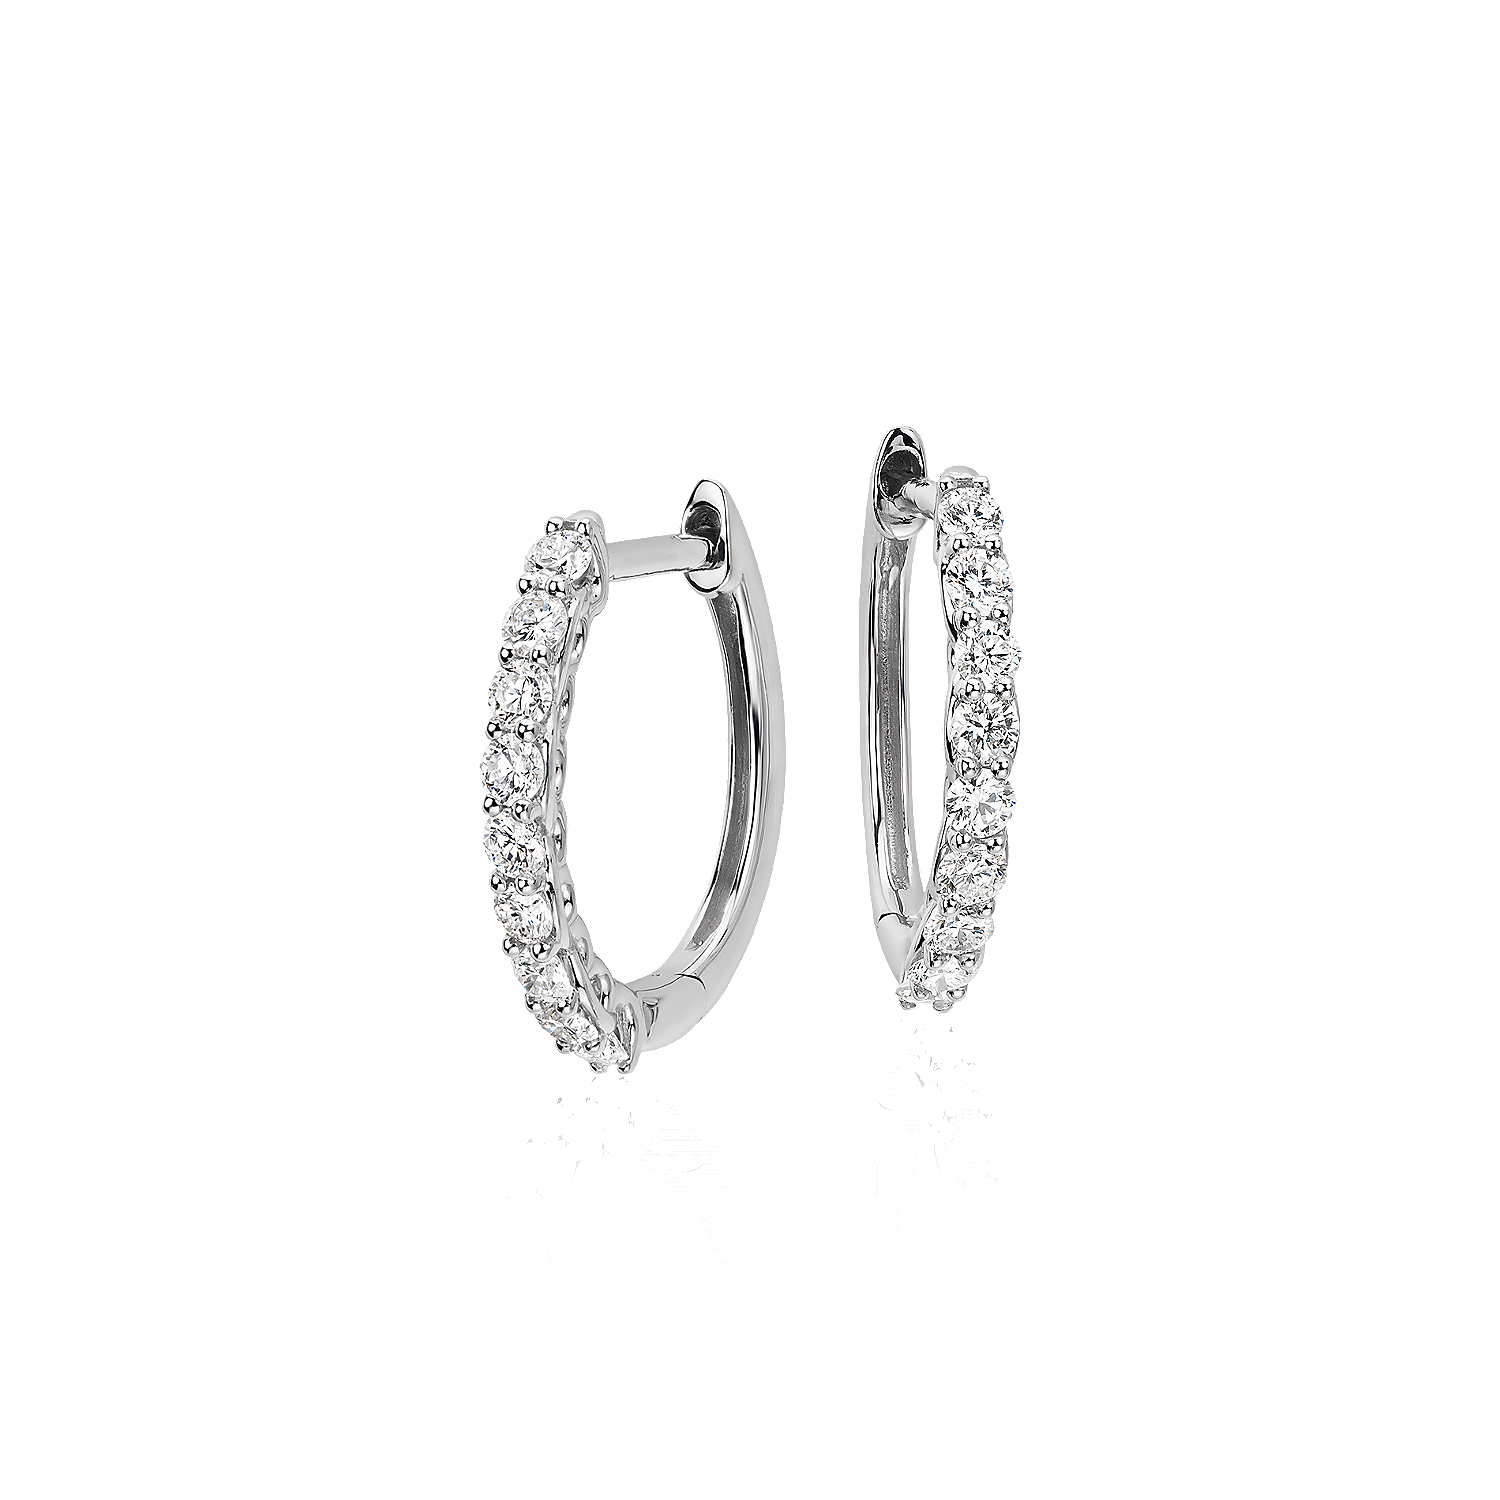 59562_Colin Cowie Diamond Hoop Earrings in 14k White Gold 0.5 ct. tw.jpg